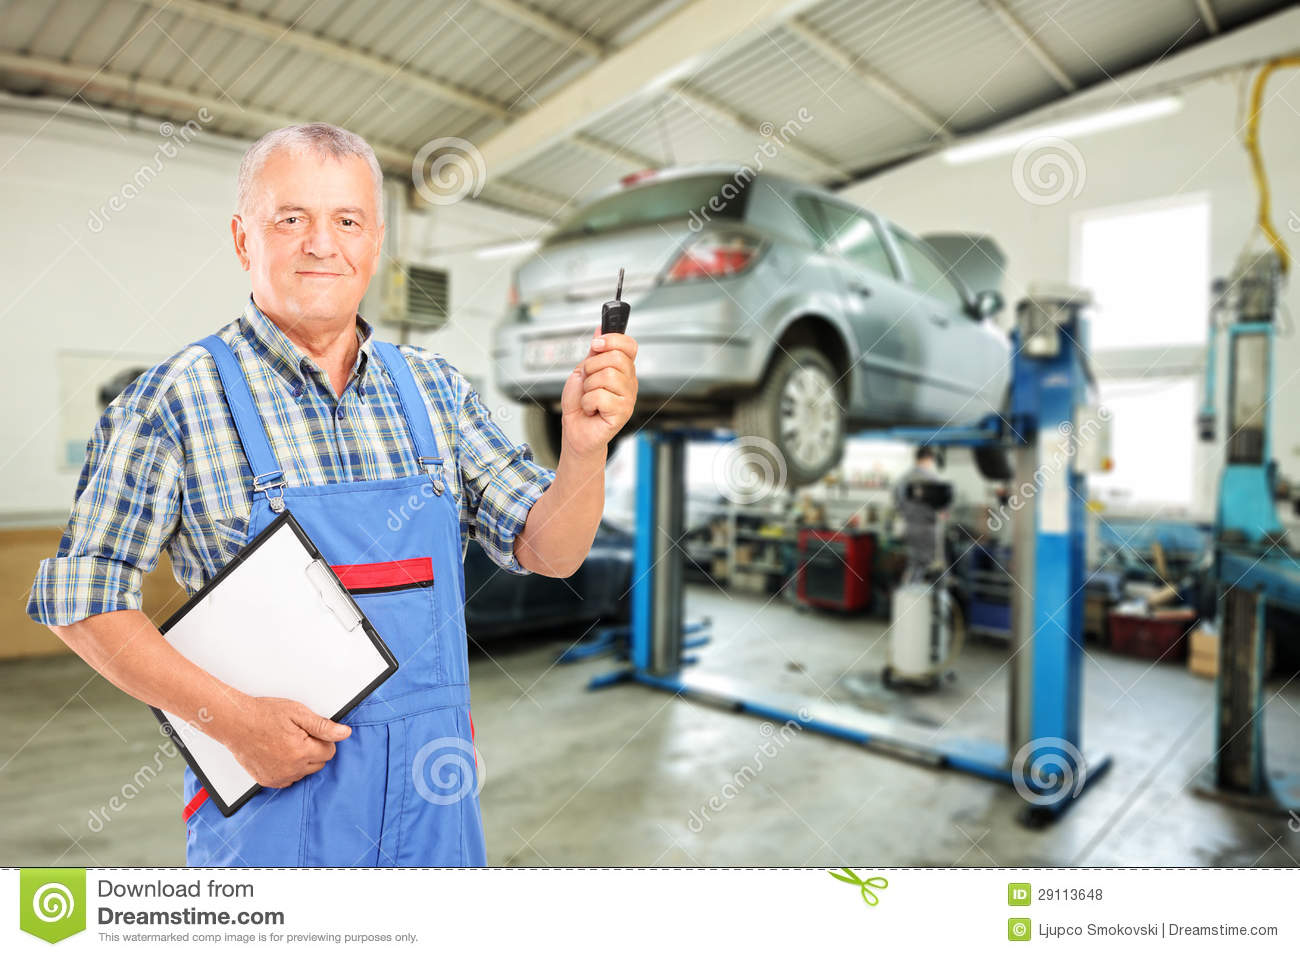 Mechanic Holding A Car Key Atauto Repair Shop Stock Photo